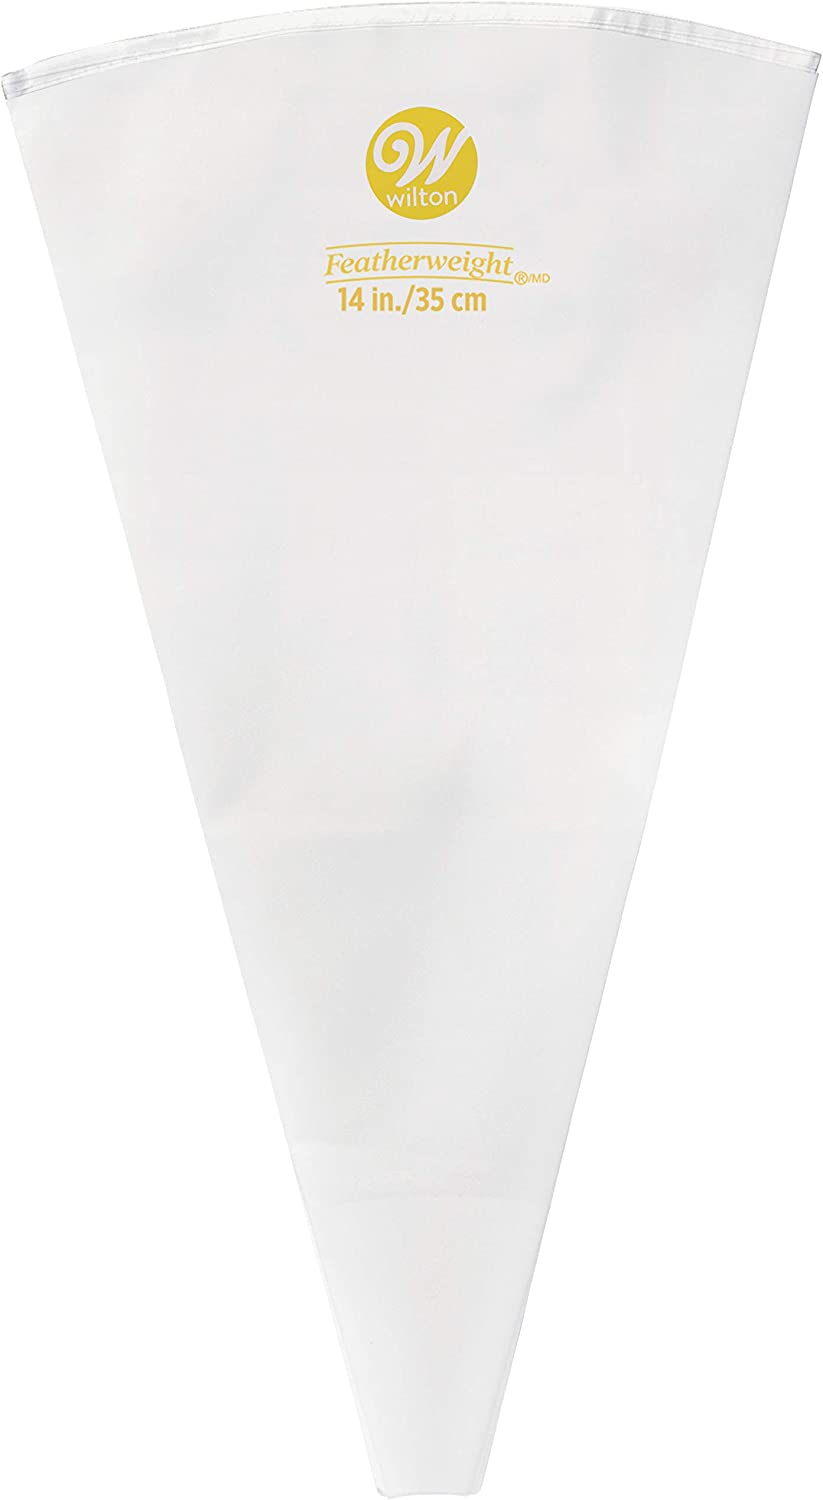 Featherweight Decorating Piping Bag, Reusable, 35cm (14in)